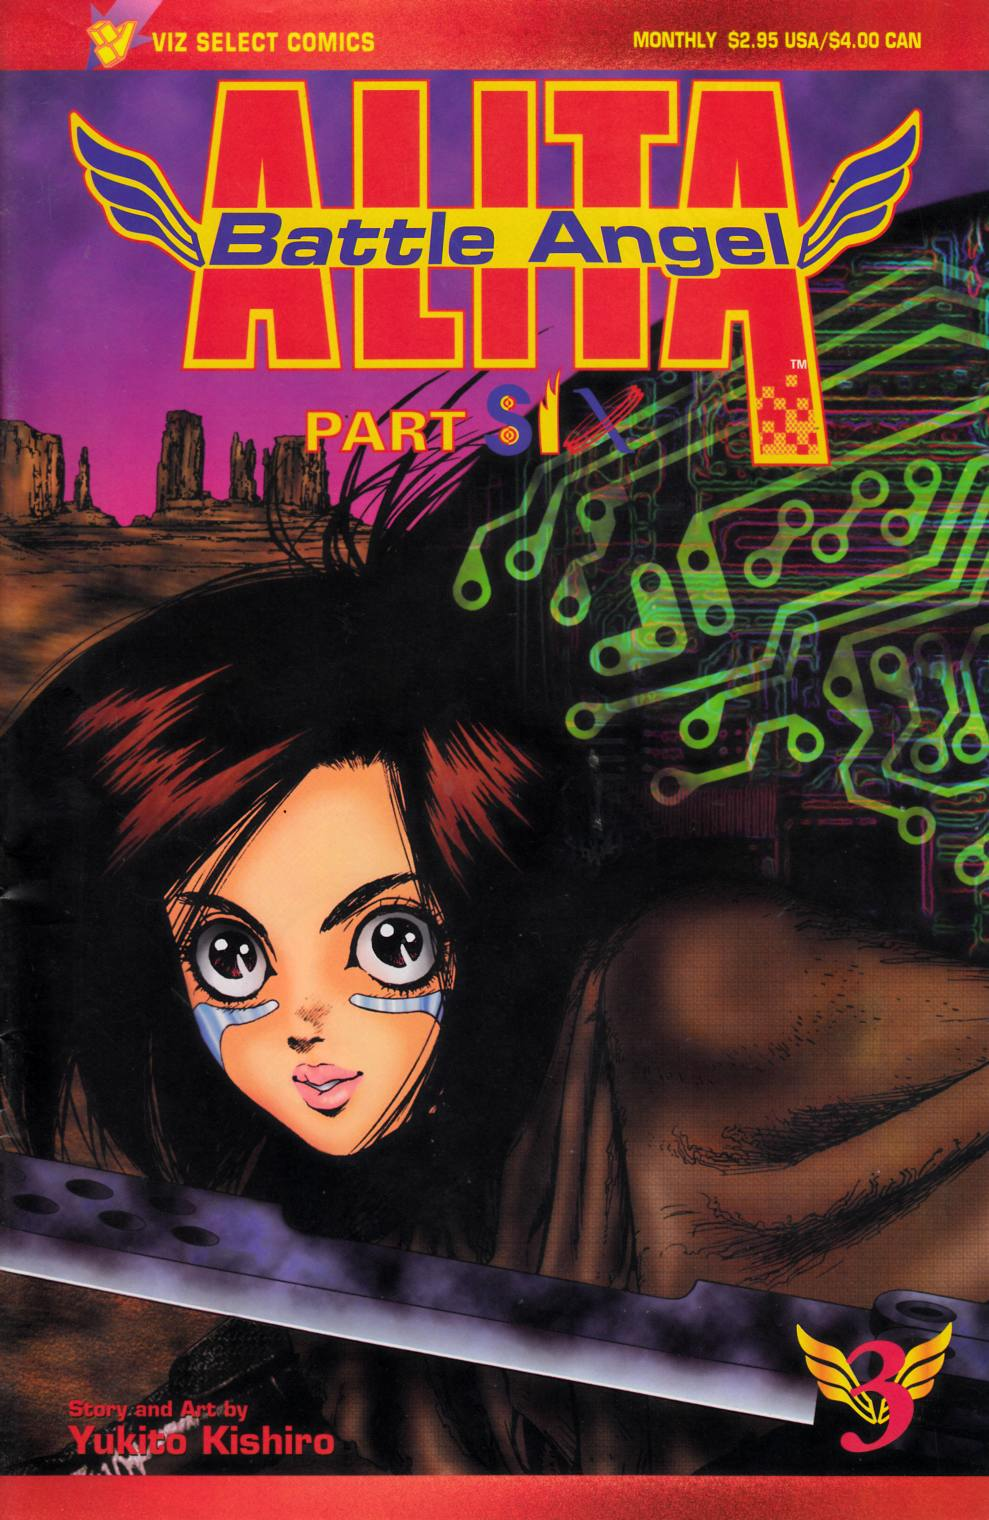 Battle Angel Alita Part 6 #3 Very Good (4.0) [Viz Comic]